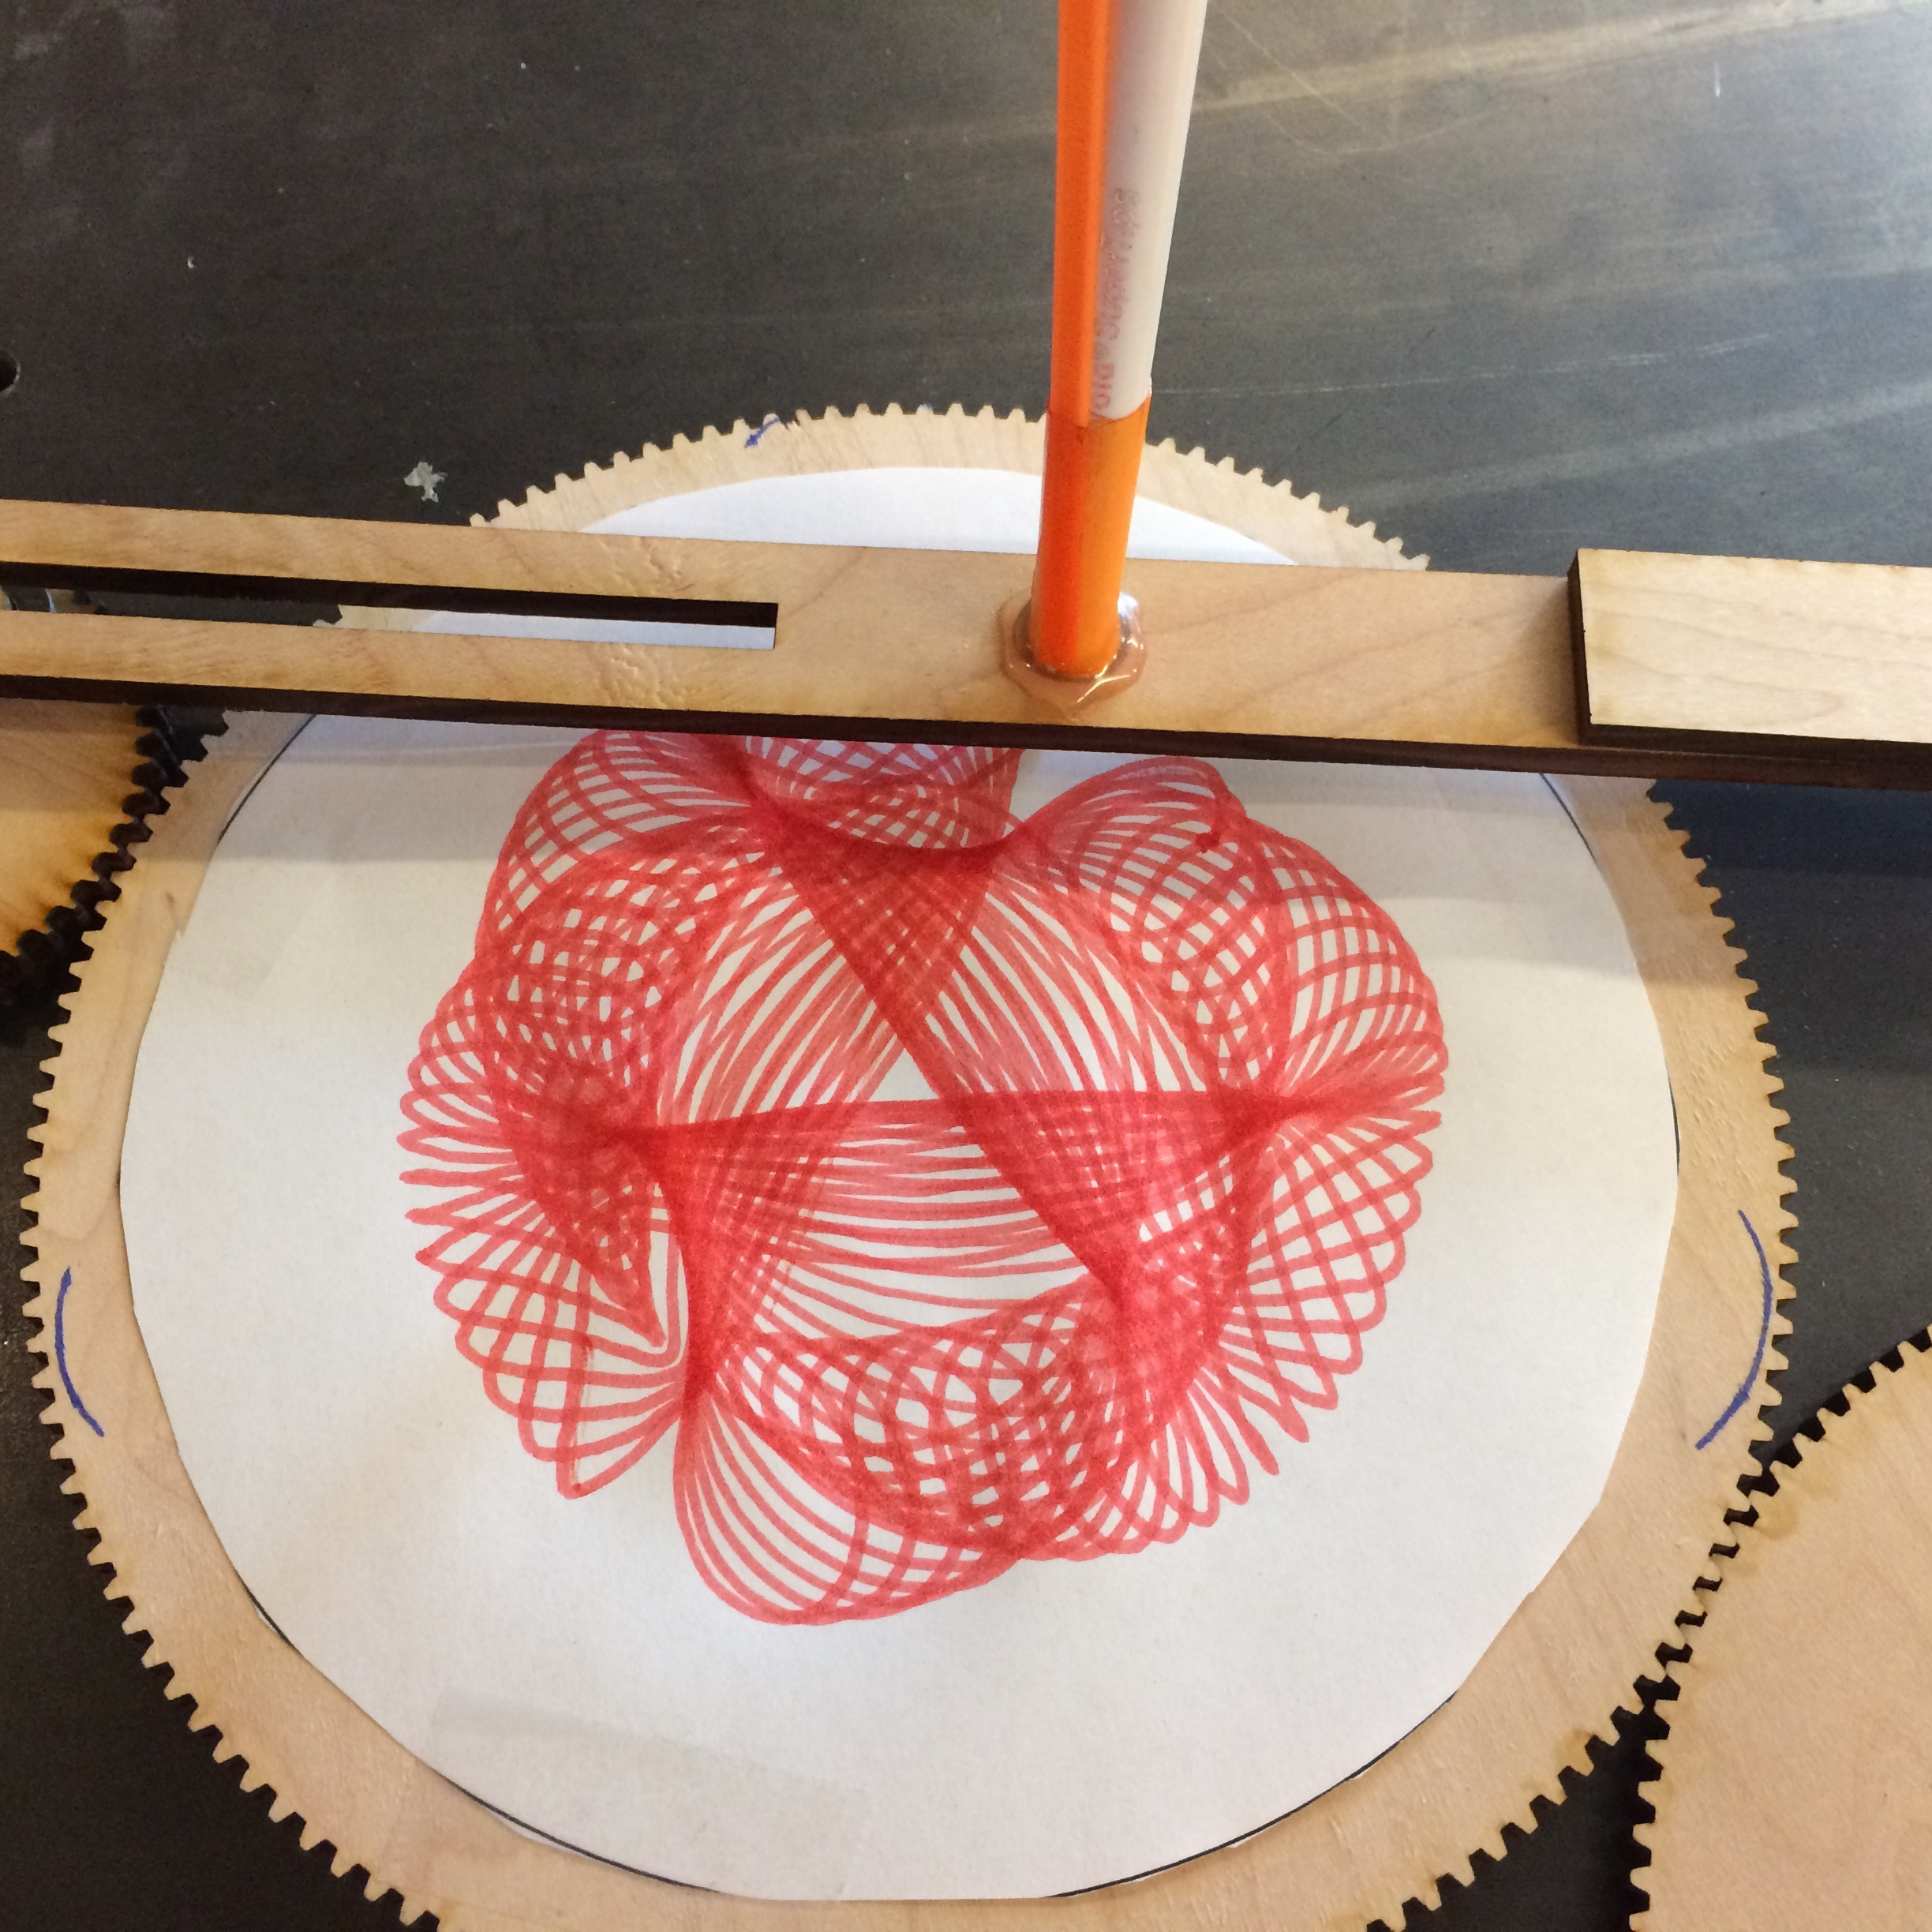 Cycloid Drawing Machine | Exploratorium